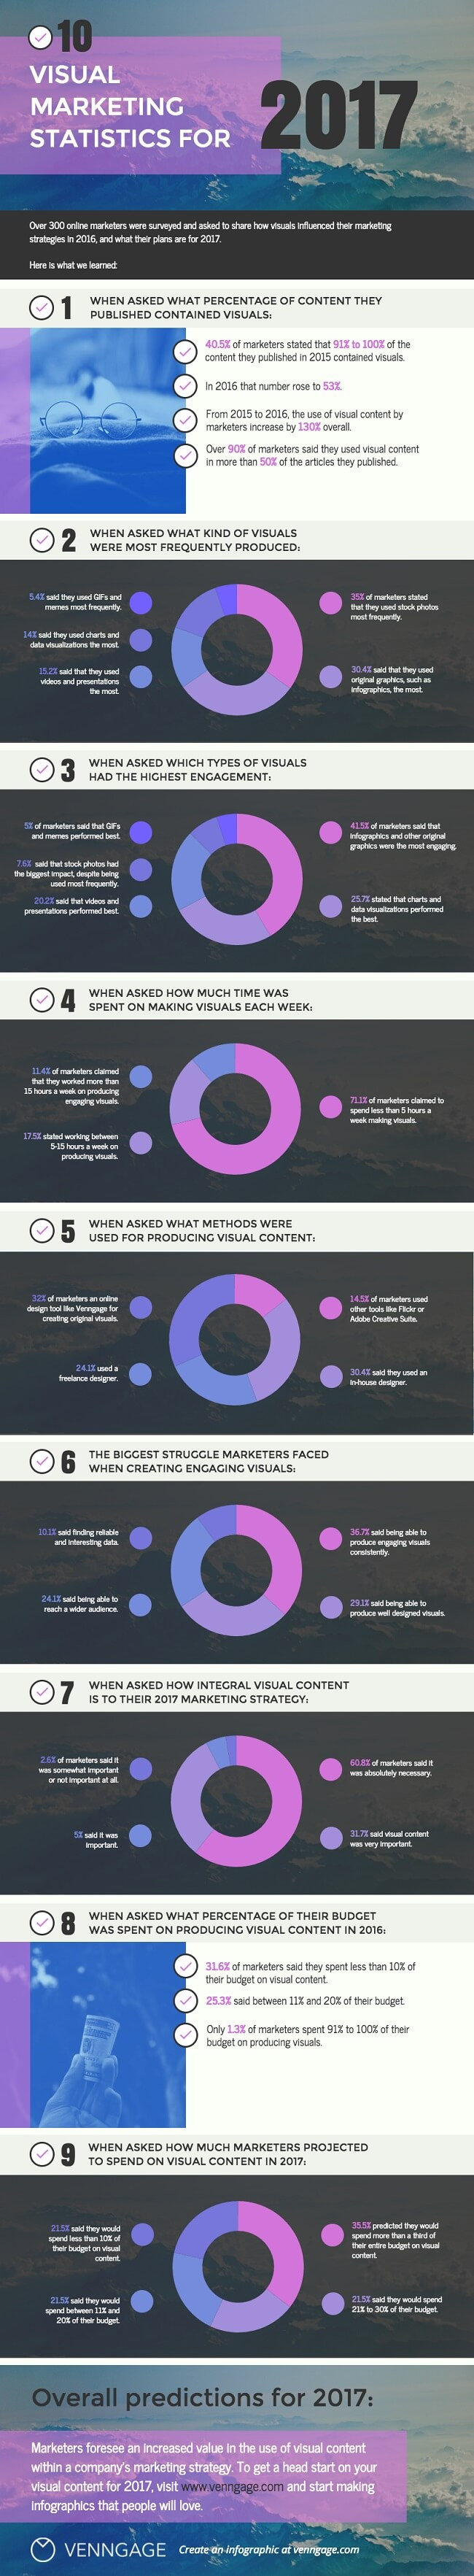 Visual marketing stats infographic from Unmetric